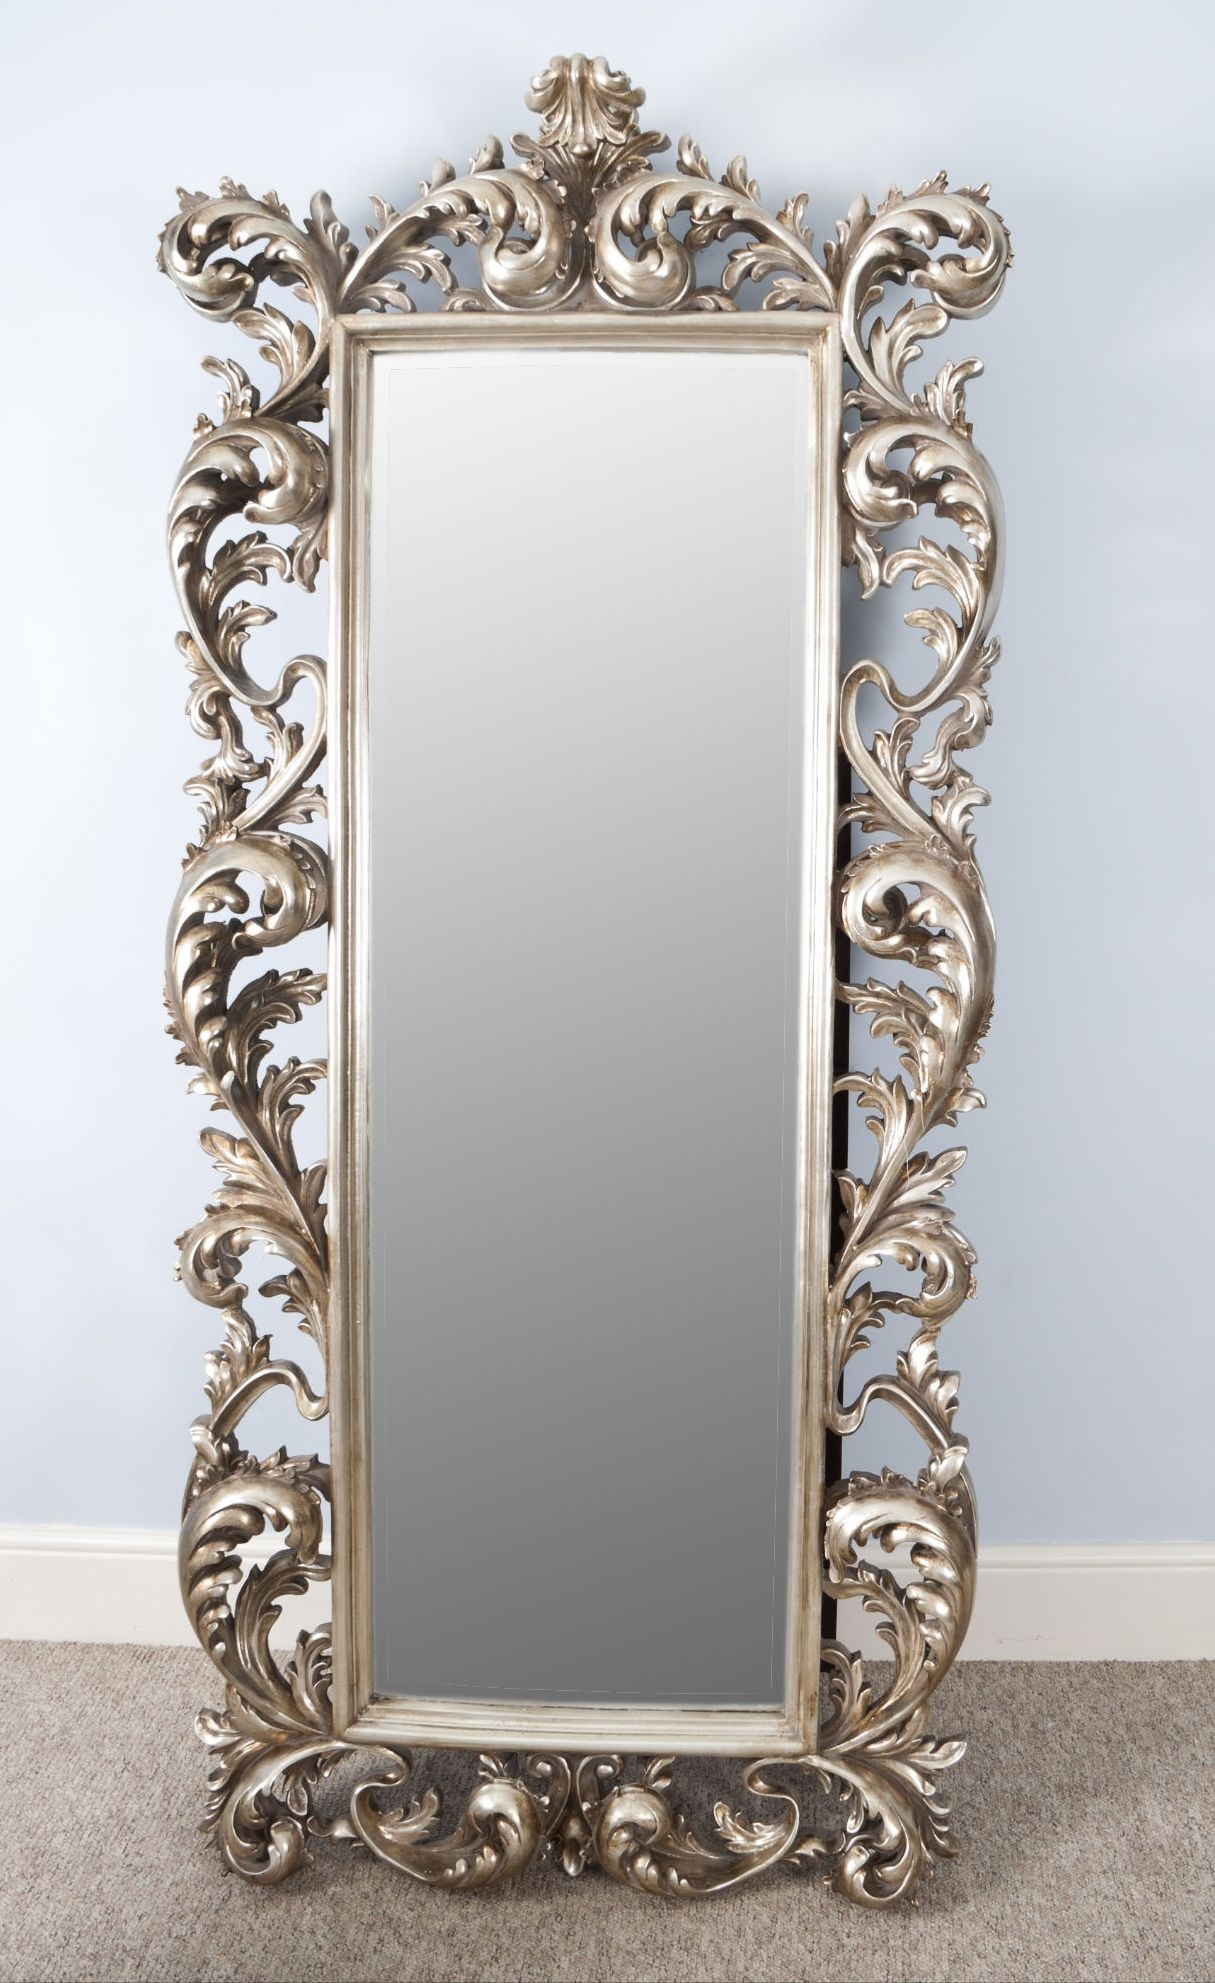 Classic Impression On Antique Wall Mirrors Vwho Within Vintage Mirrors (Image 5 of 15)